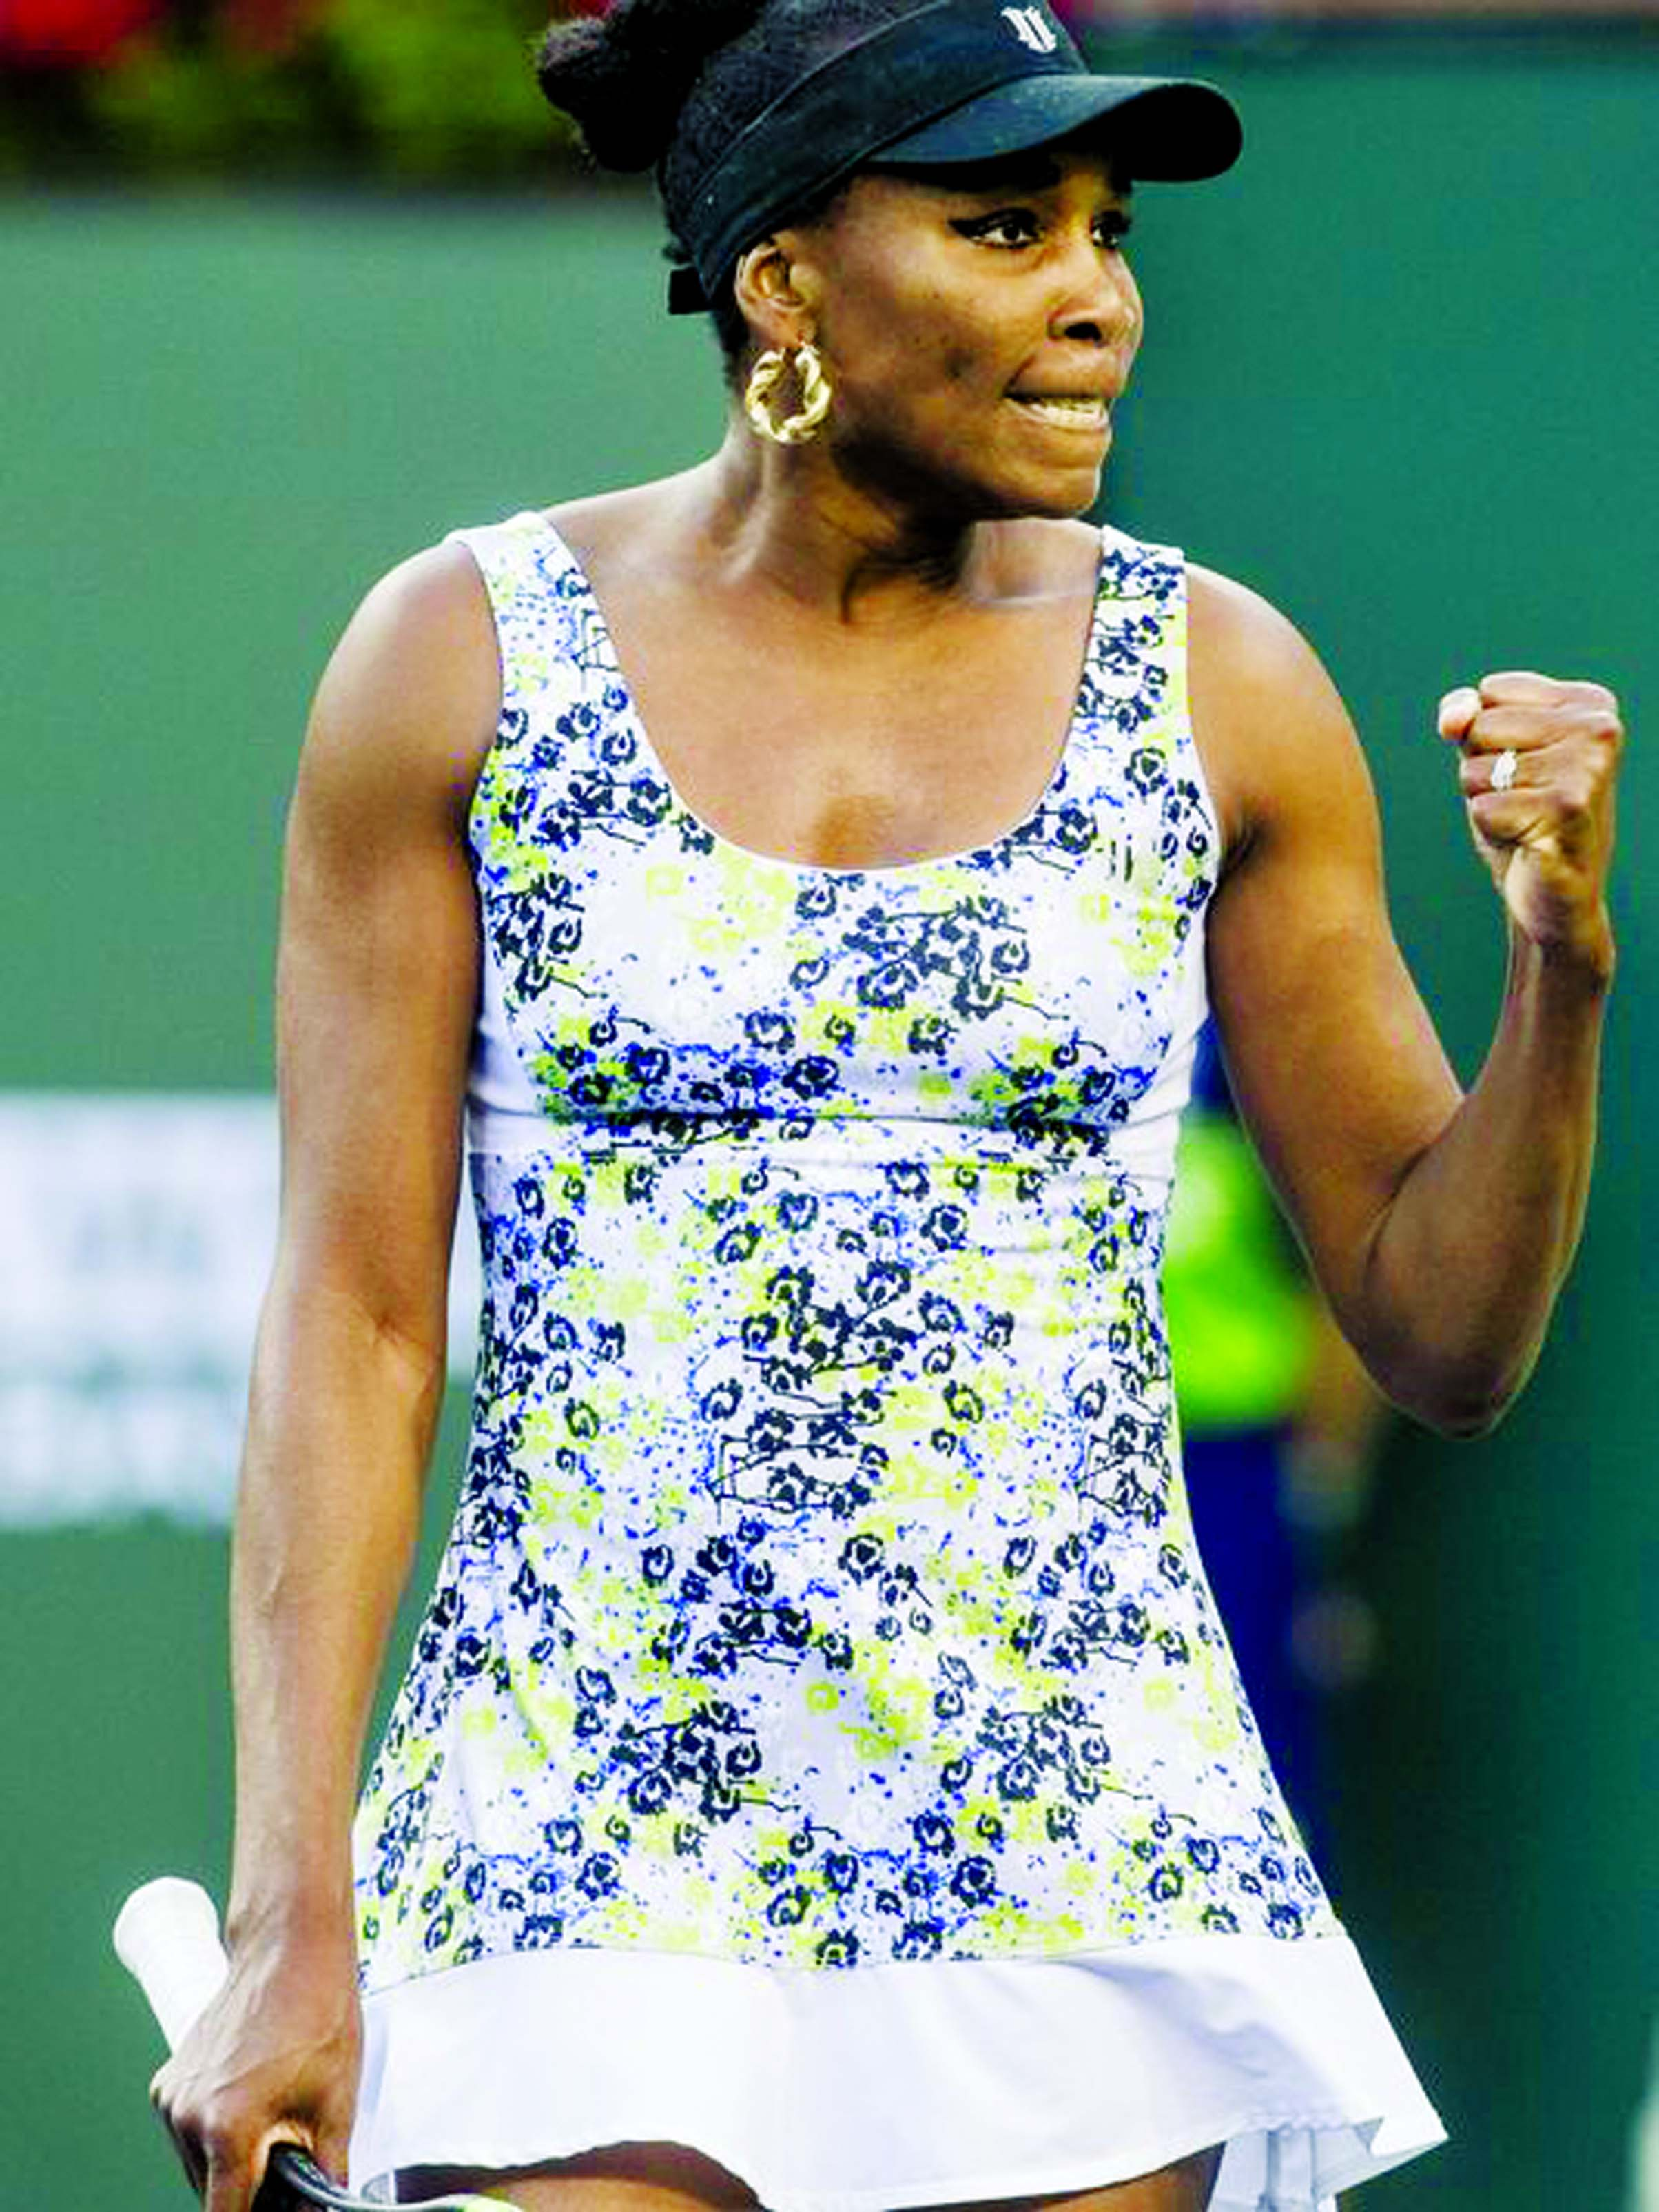 Venus Williams of the United States of America celebrates a break point against Carla Suarez Navarro of Spain on Stadium One during their quarterfinal match at the 2018 BNP Paribas Open at Indian Wells Tennis Garden on Thursday. Williams won the match 6-3, 6-2.